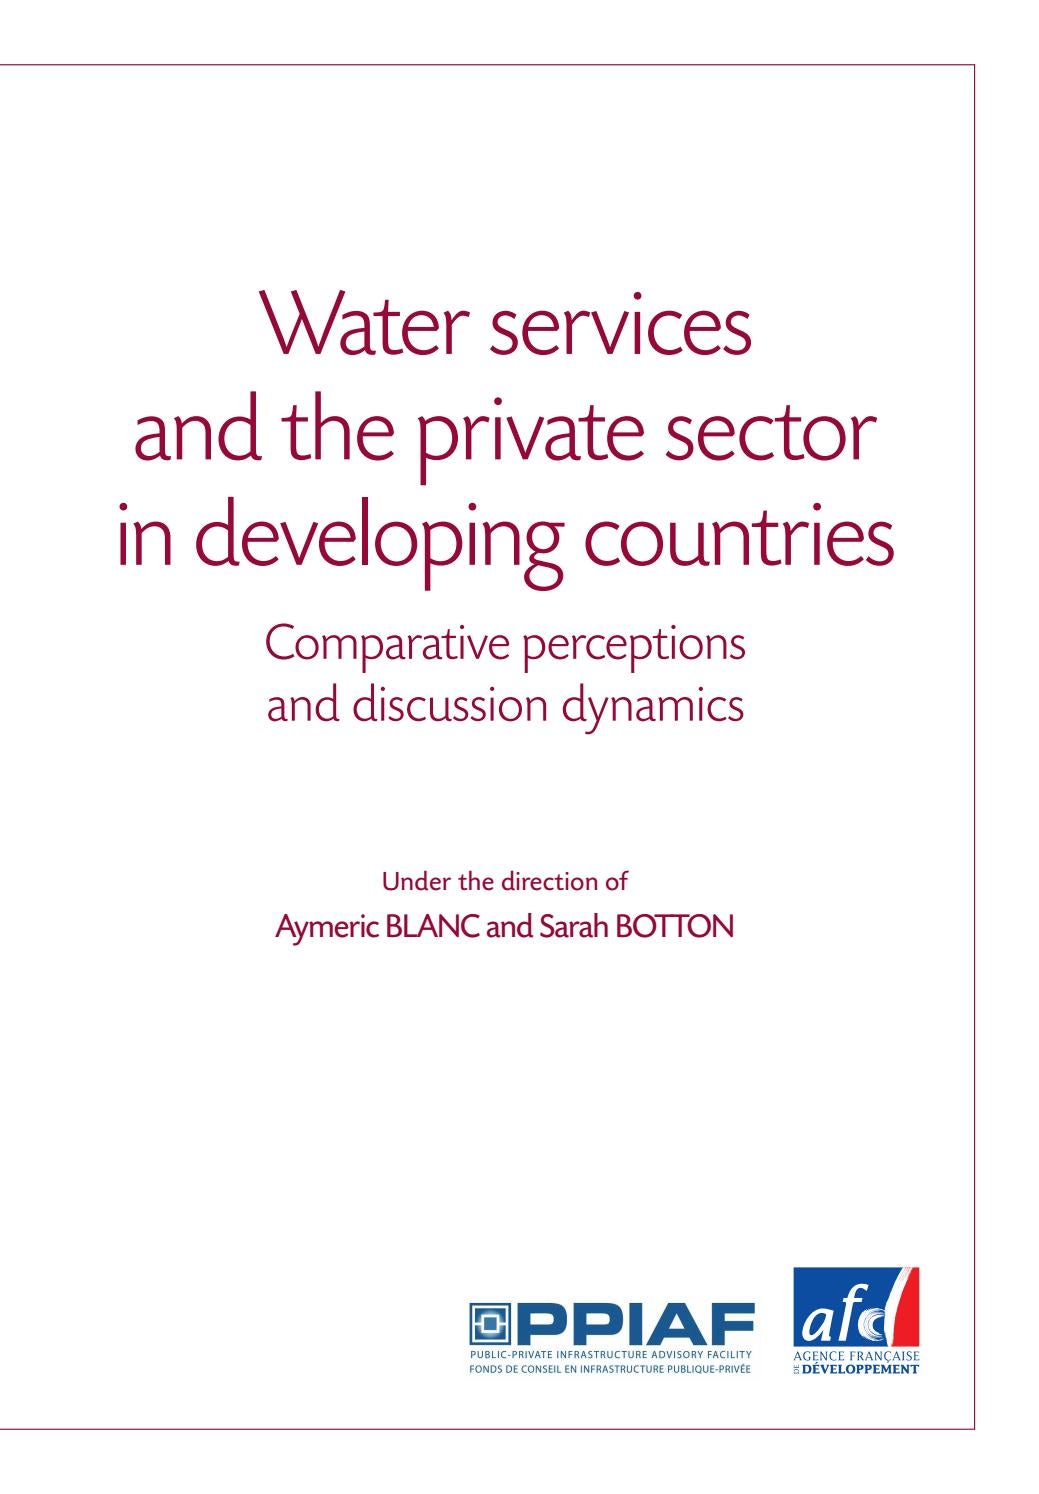 Cash Pooling Y Precios De Transferencia Water Services And The Private Sector In Developing